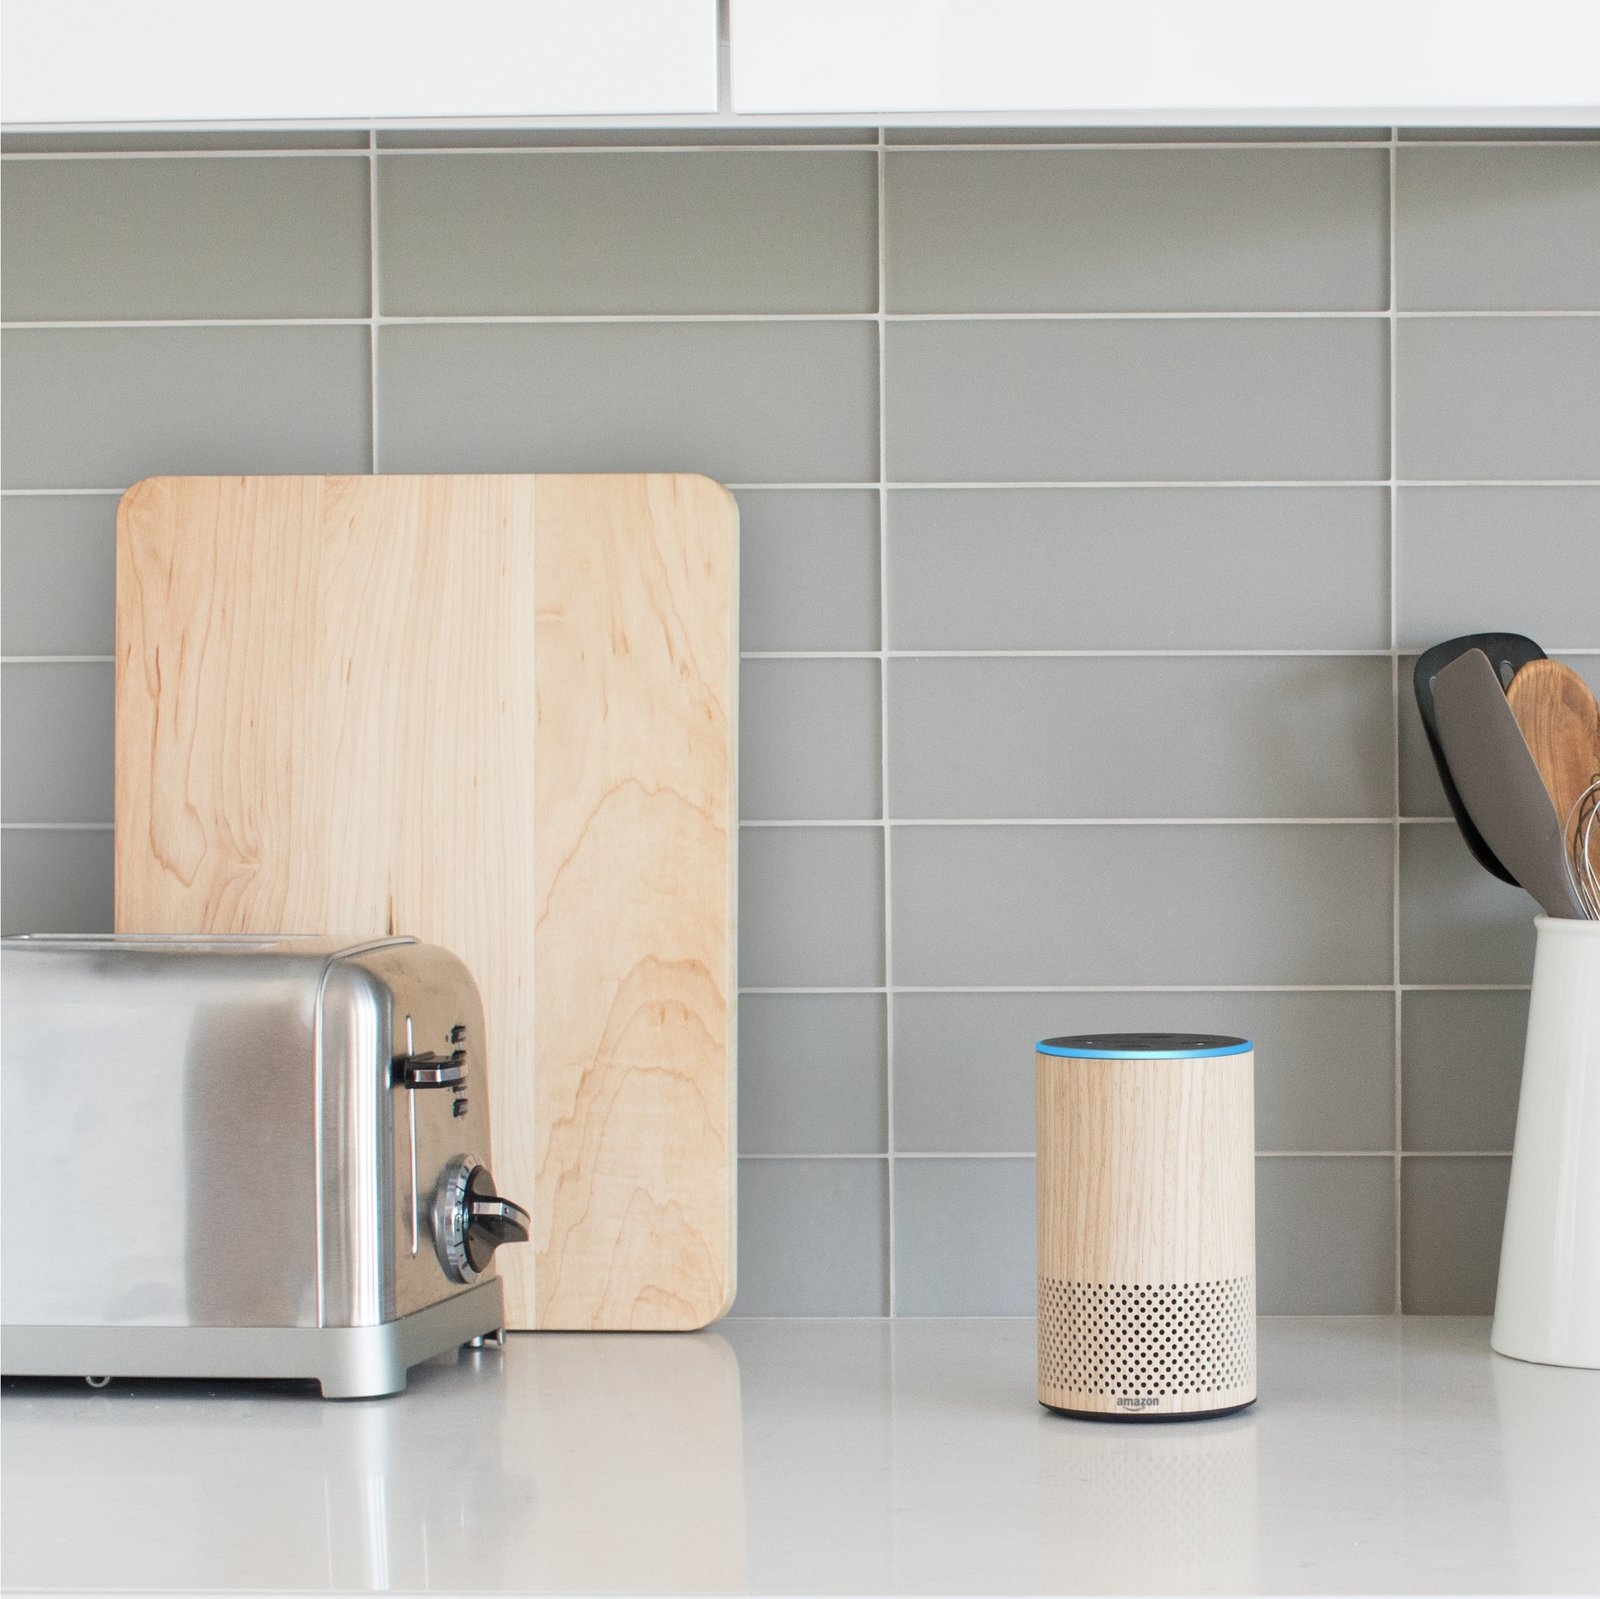 8 Smart Gadgets to Supercharge Your Kitchen